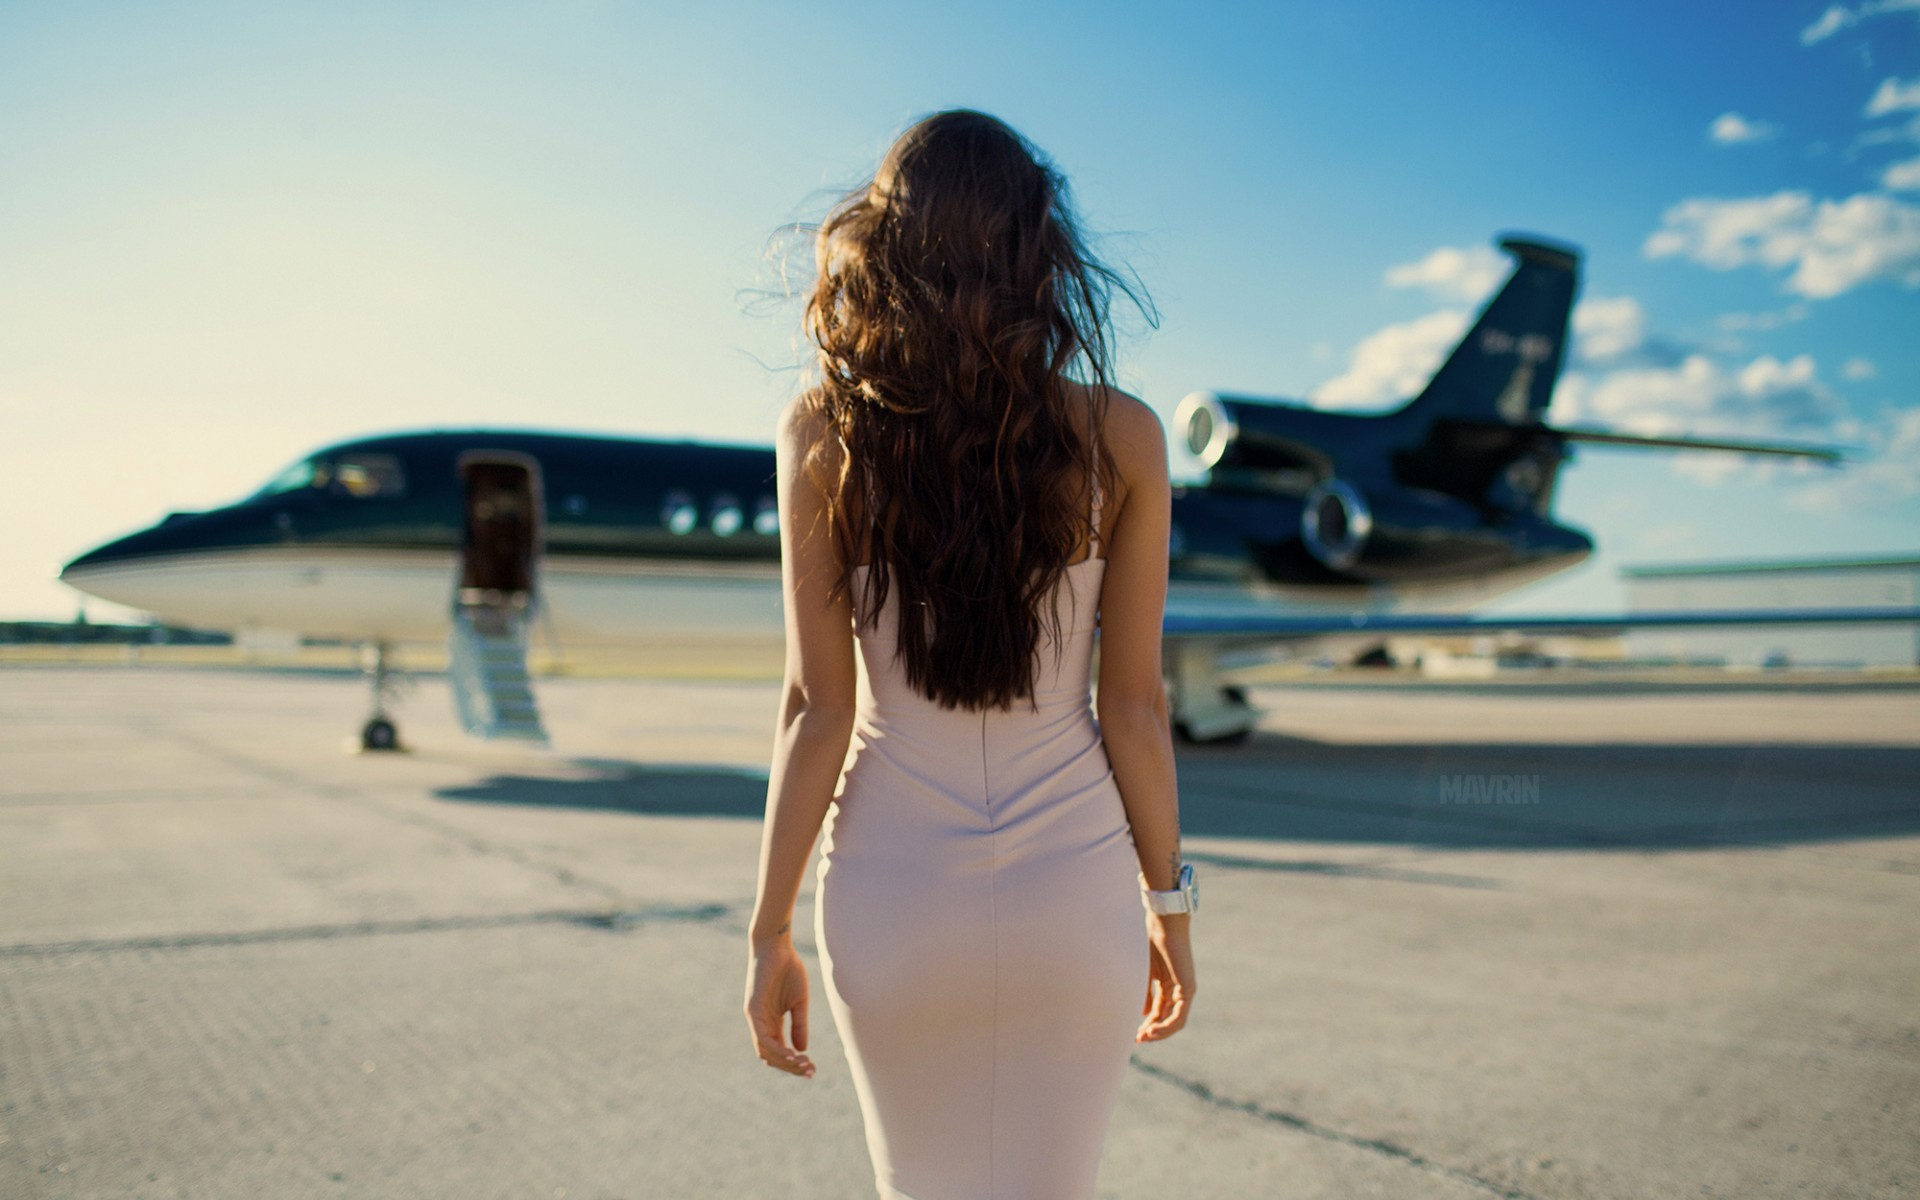 Girls With Planes